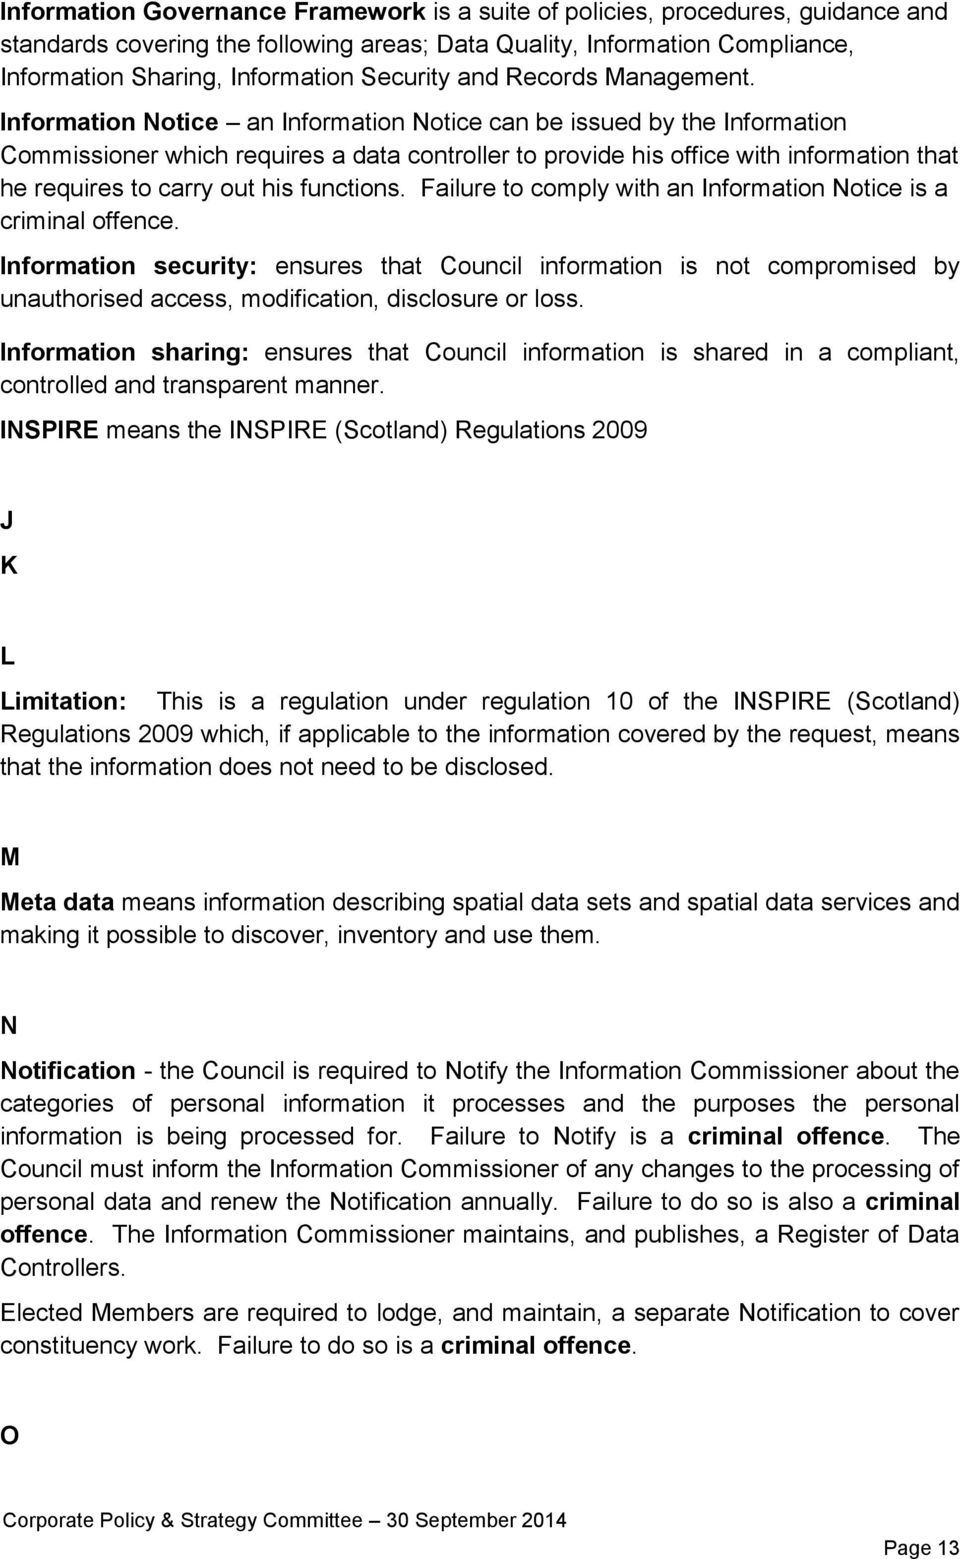 Information Notice an Information Notice can be issued by the Information Commissioner which requires a data controller to provide his office with information that he requires to carry out his